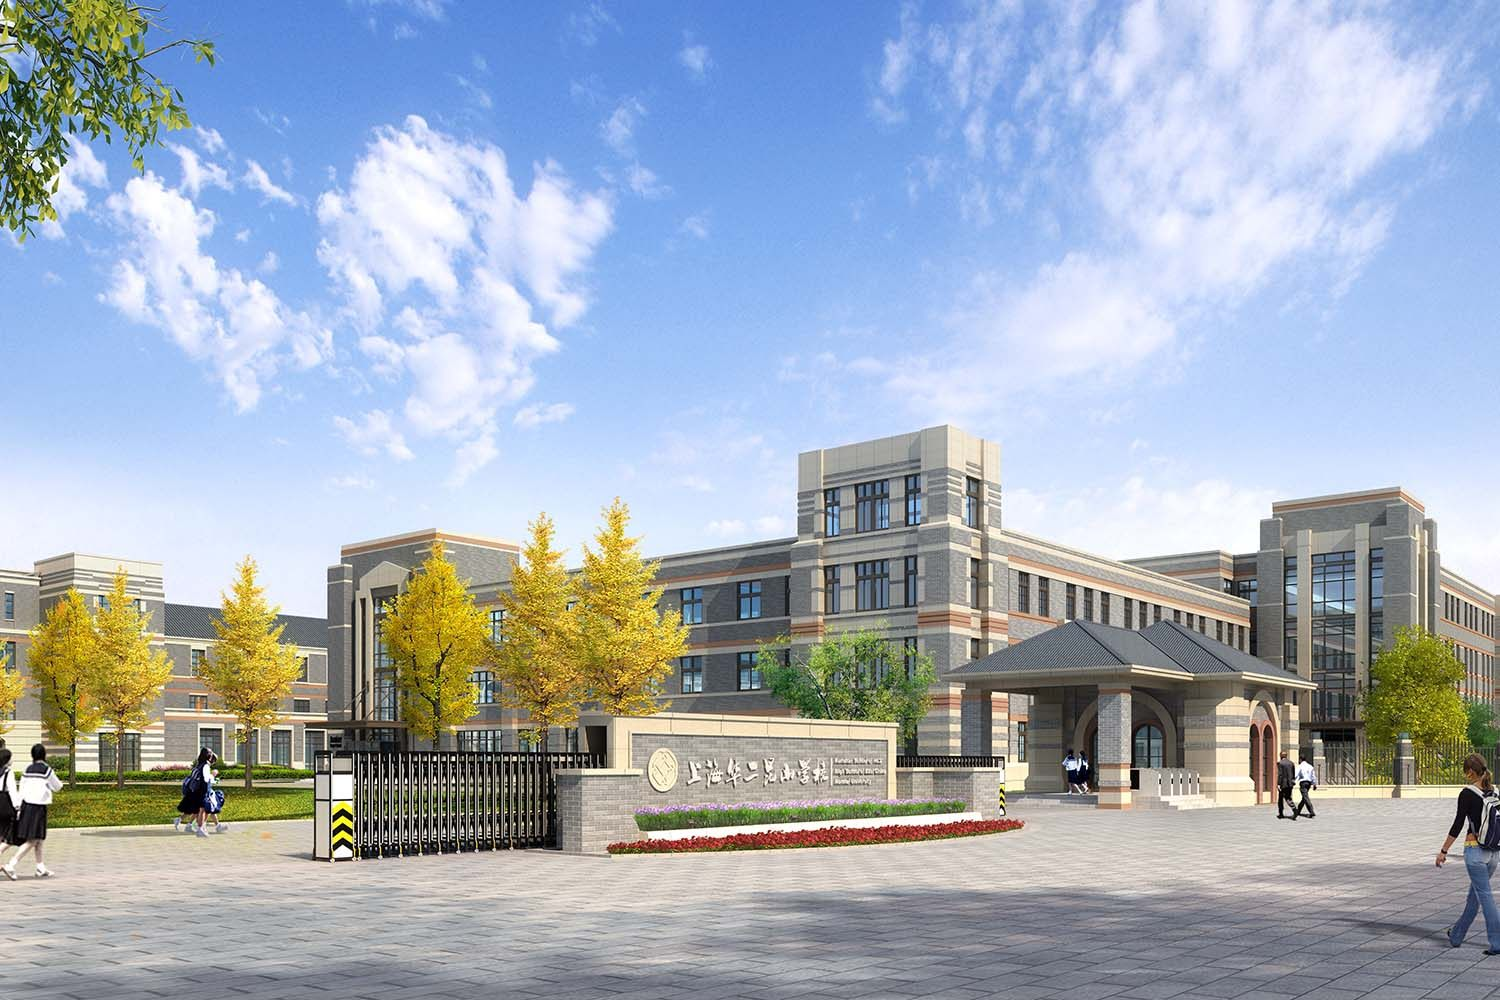 The exterior of Dipont's new school in Kunshan, China